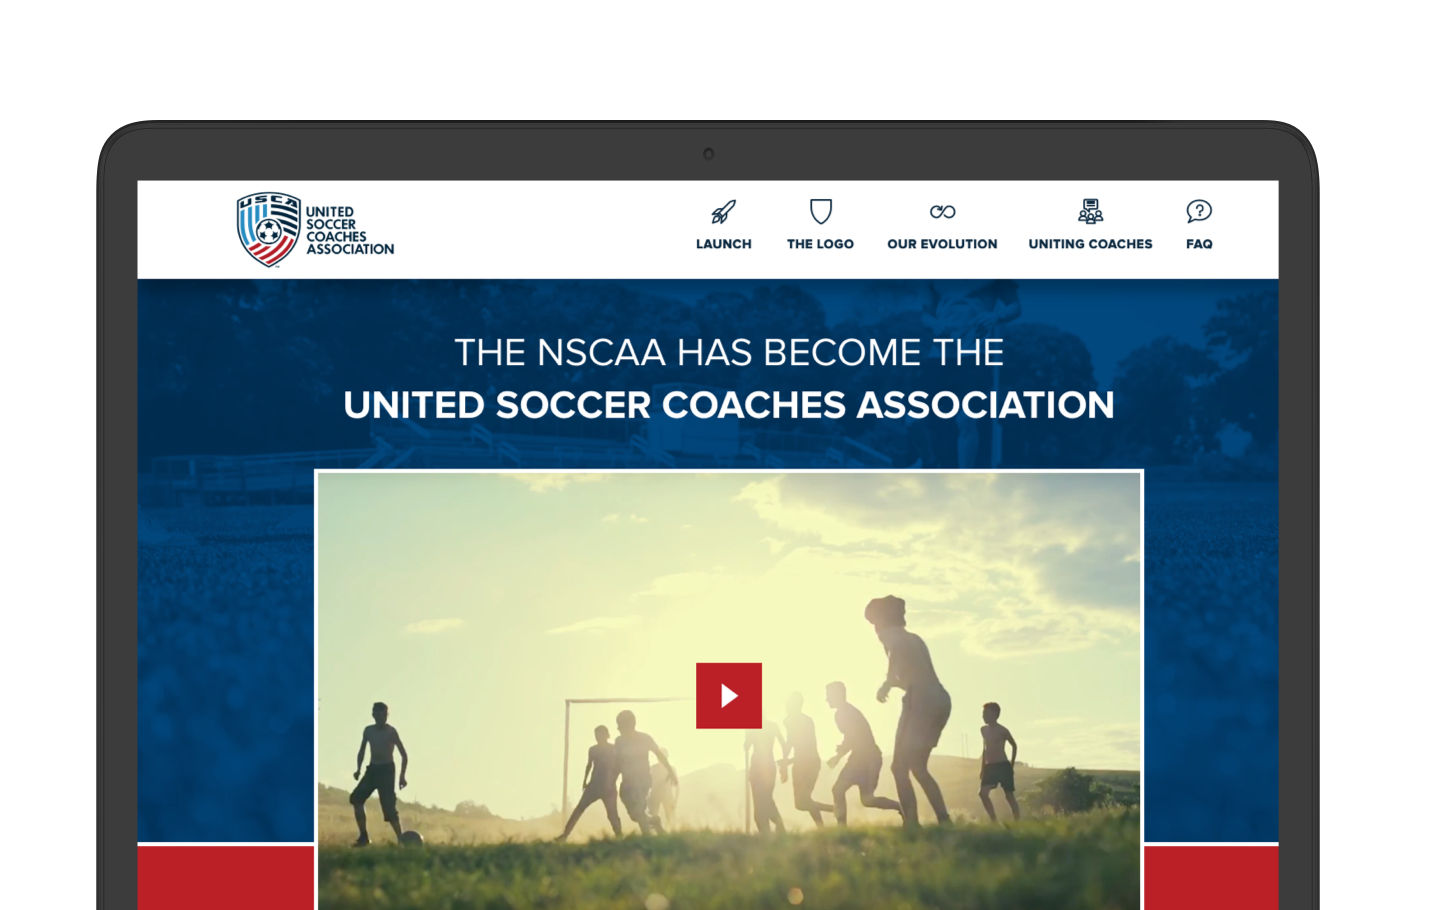 United Soccer Coaches - Website redesign